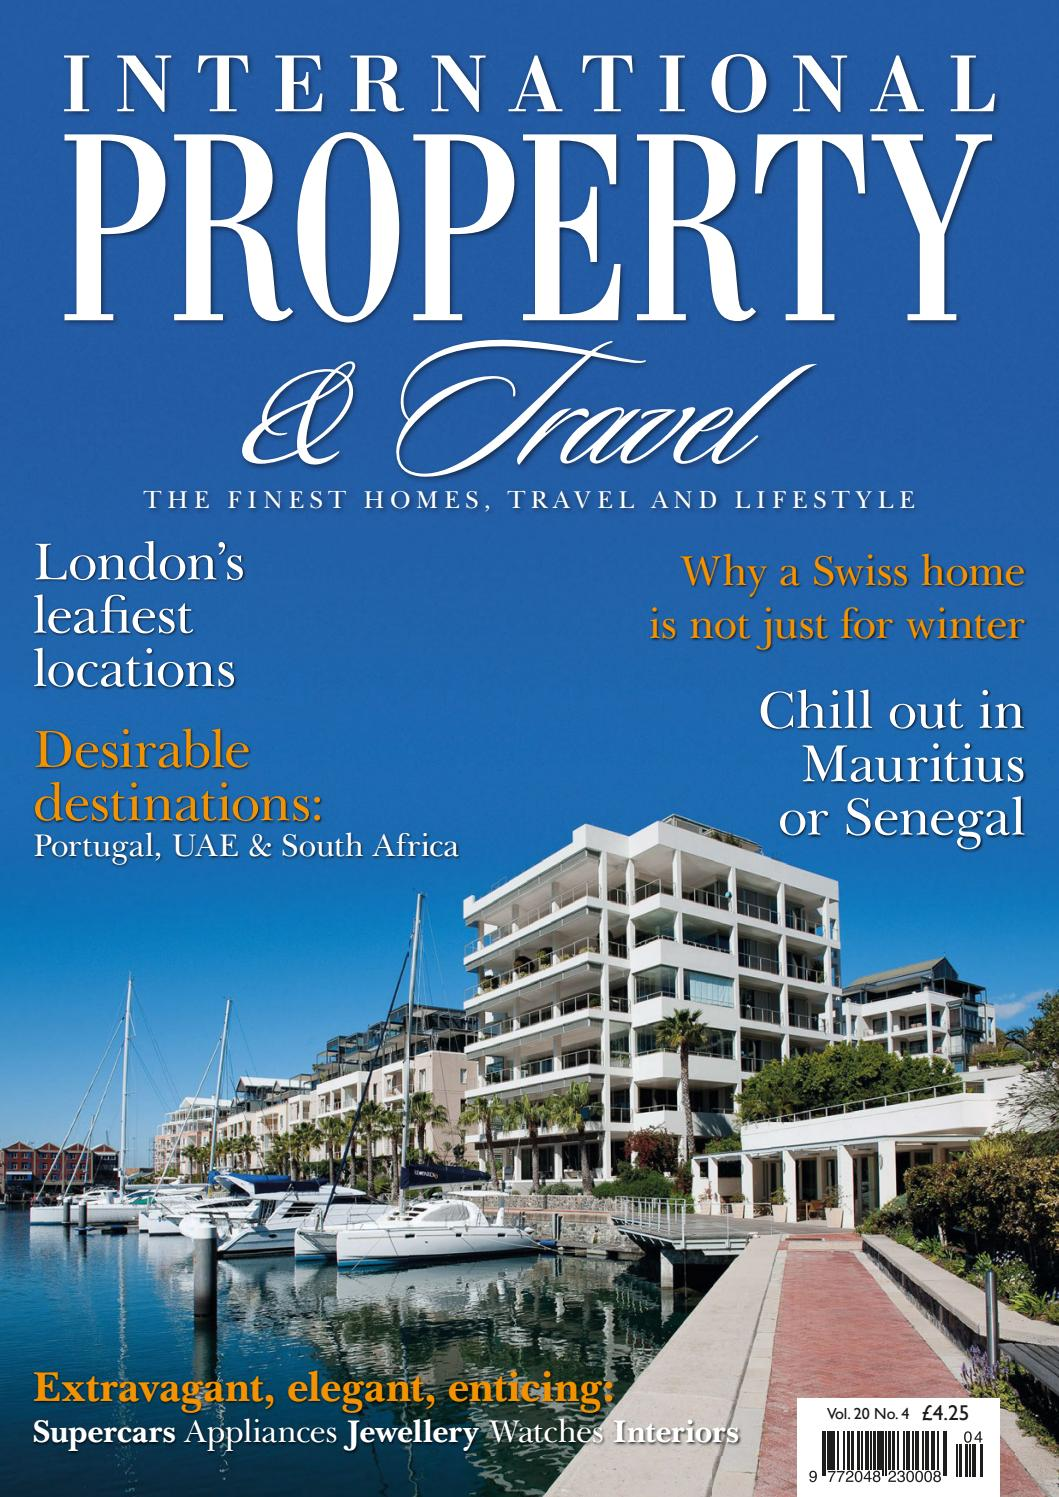 International Property & Travel Volume 20 Number 4 by